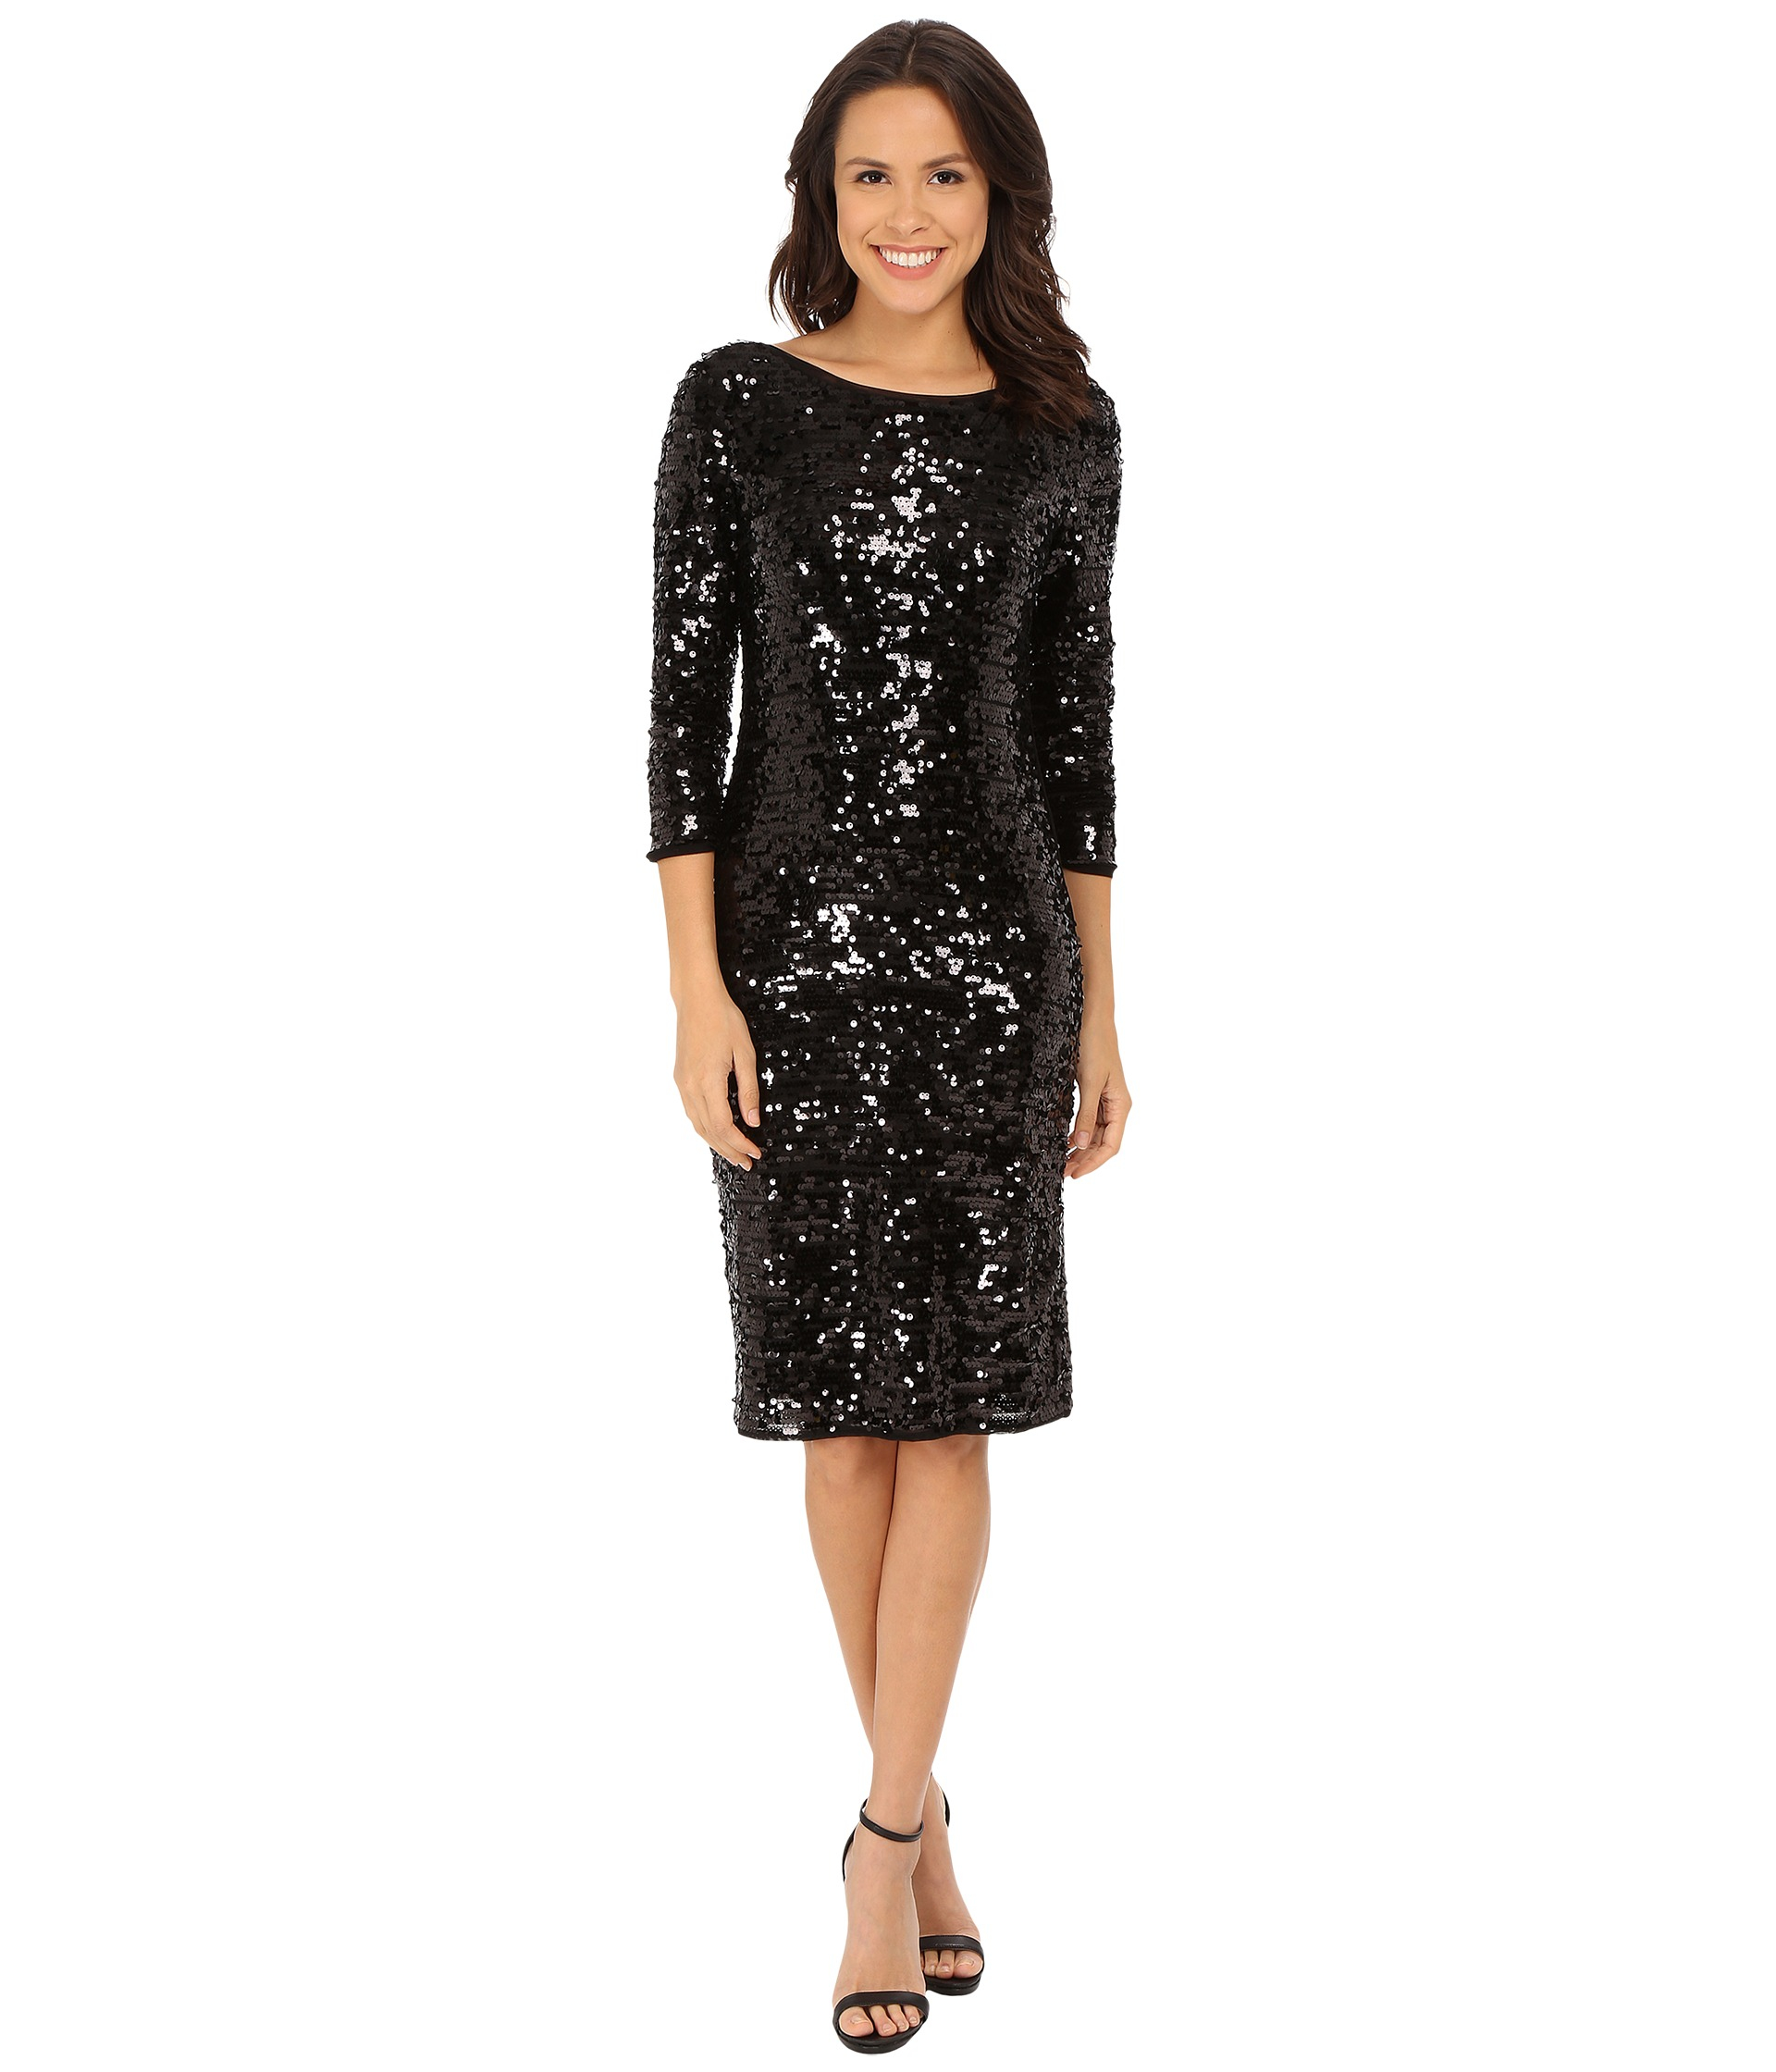 Find great deals on eBay for black sequin dresses. Shop with confidence.